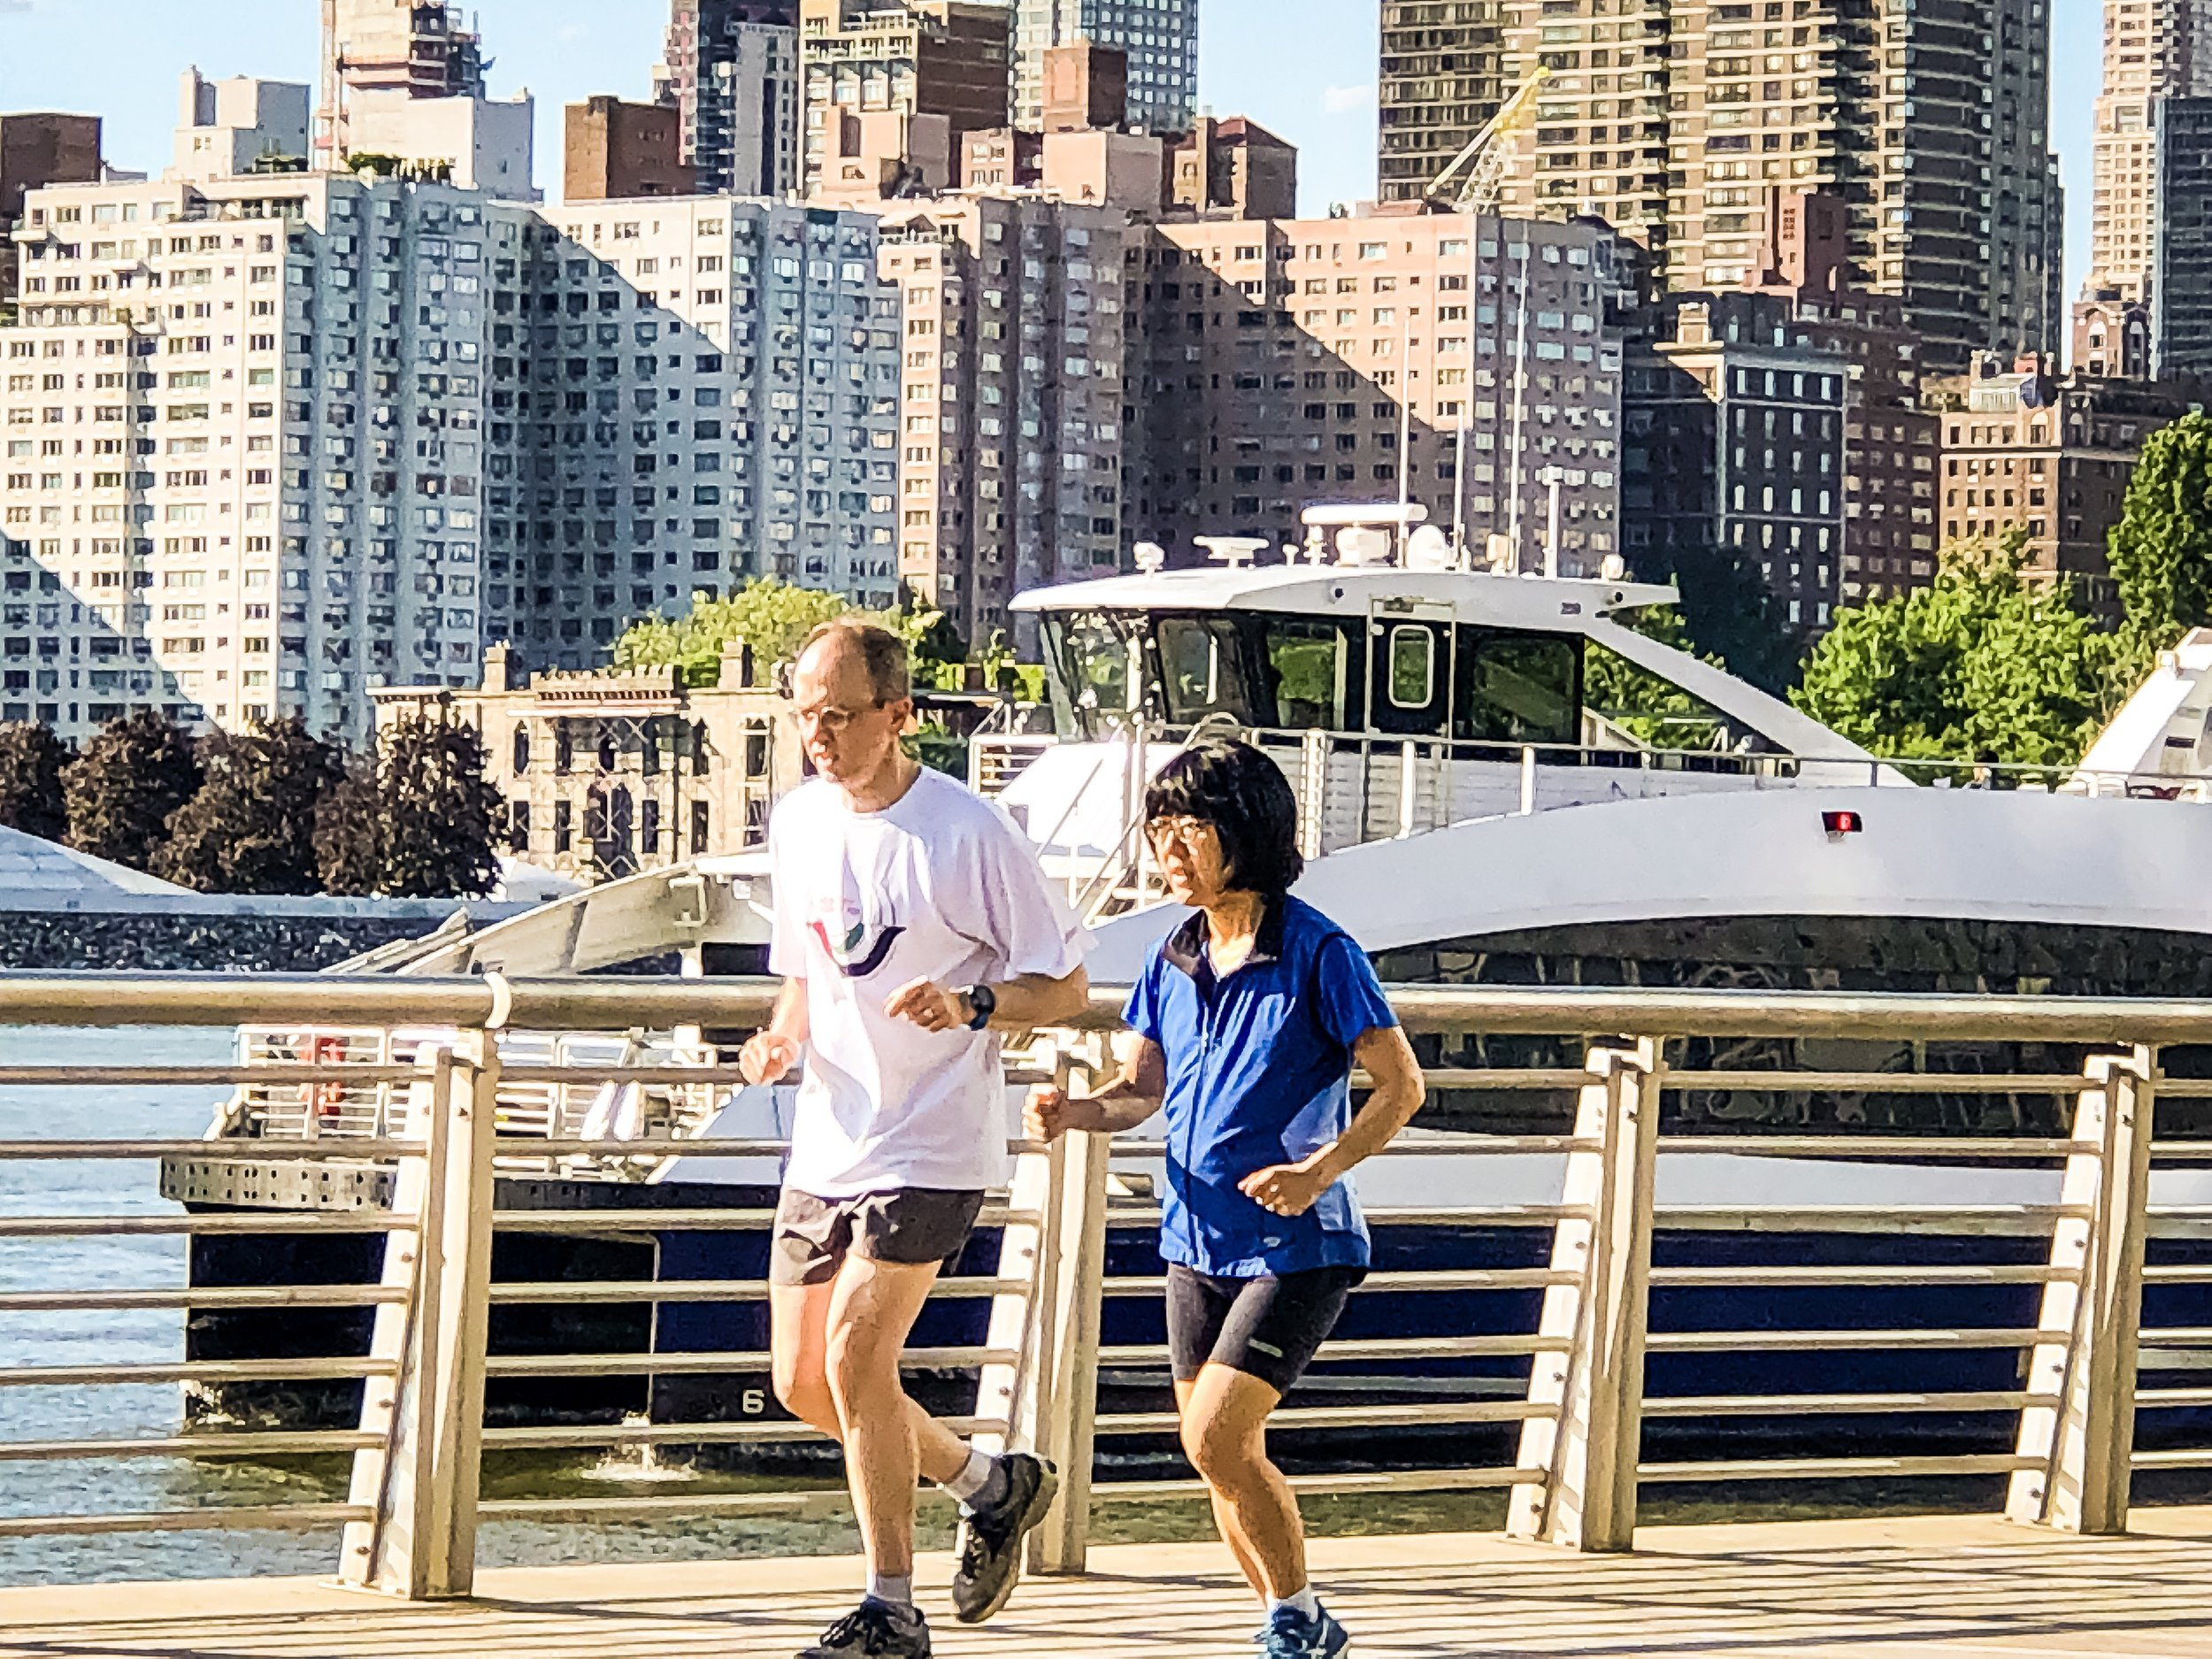 jogging with a view in gantry plaza state park, long island city, queens, new york. photo  @lucascompan